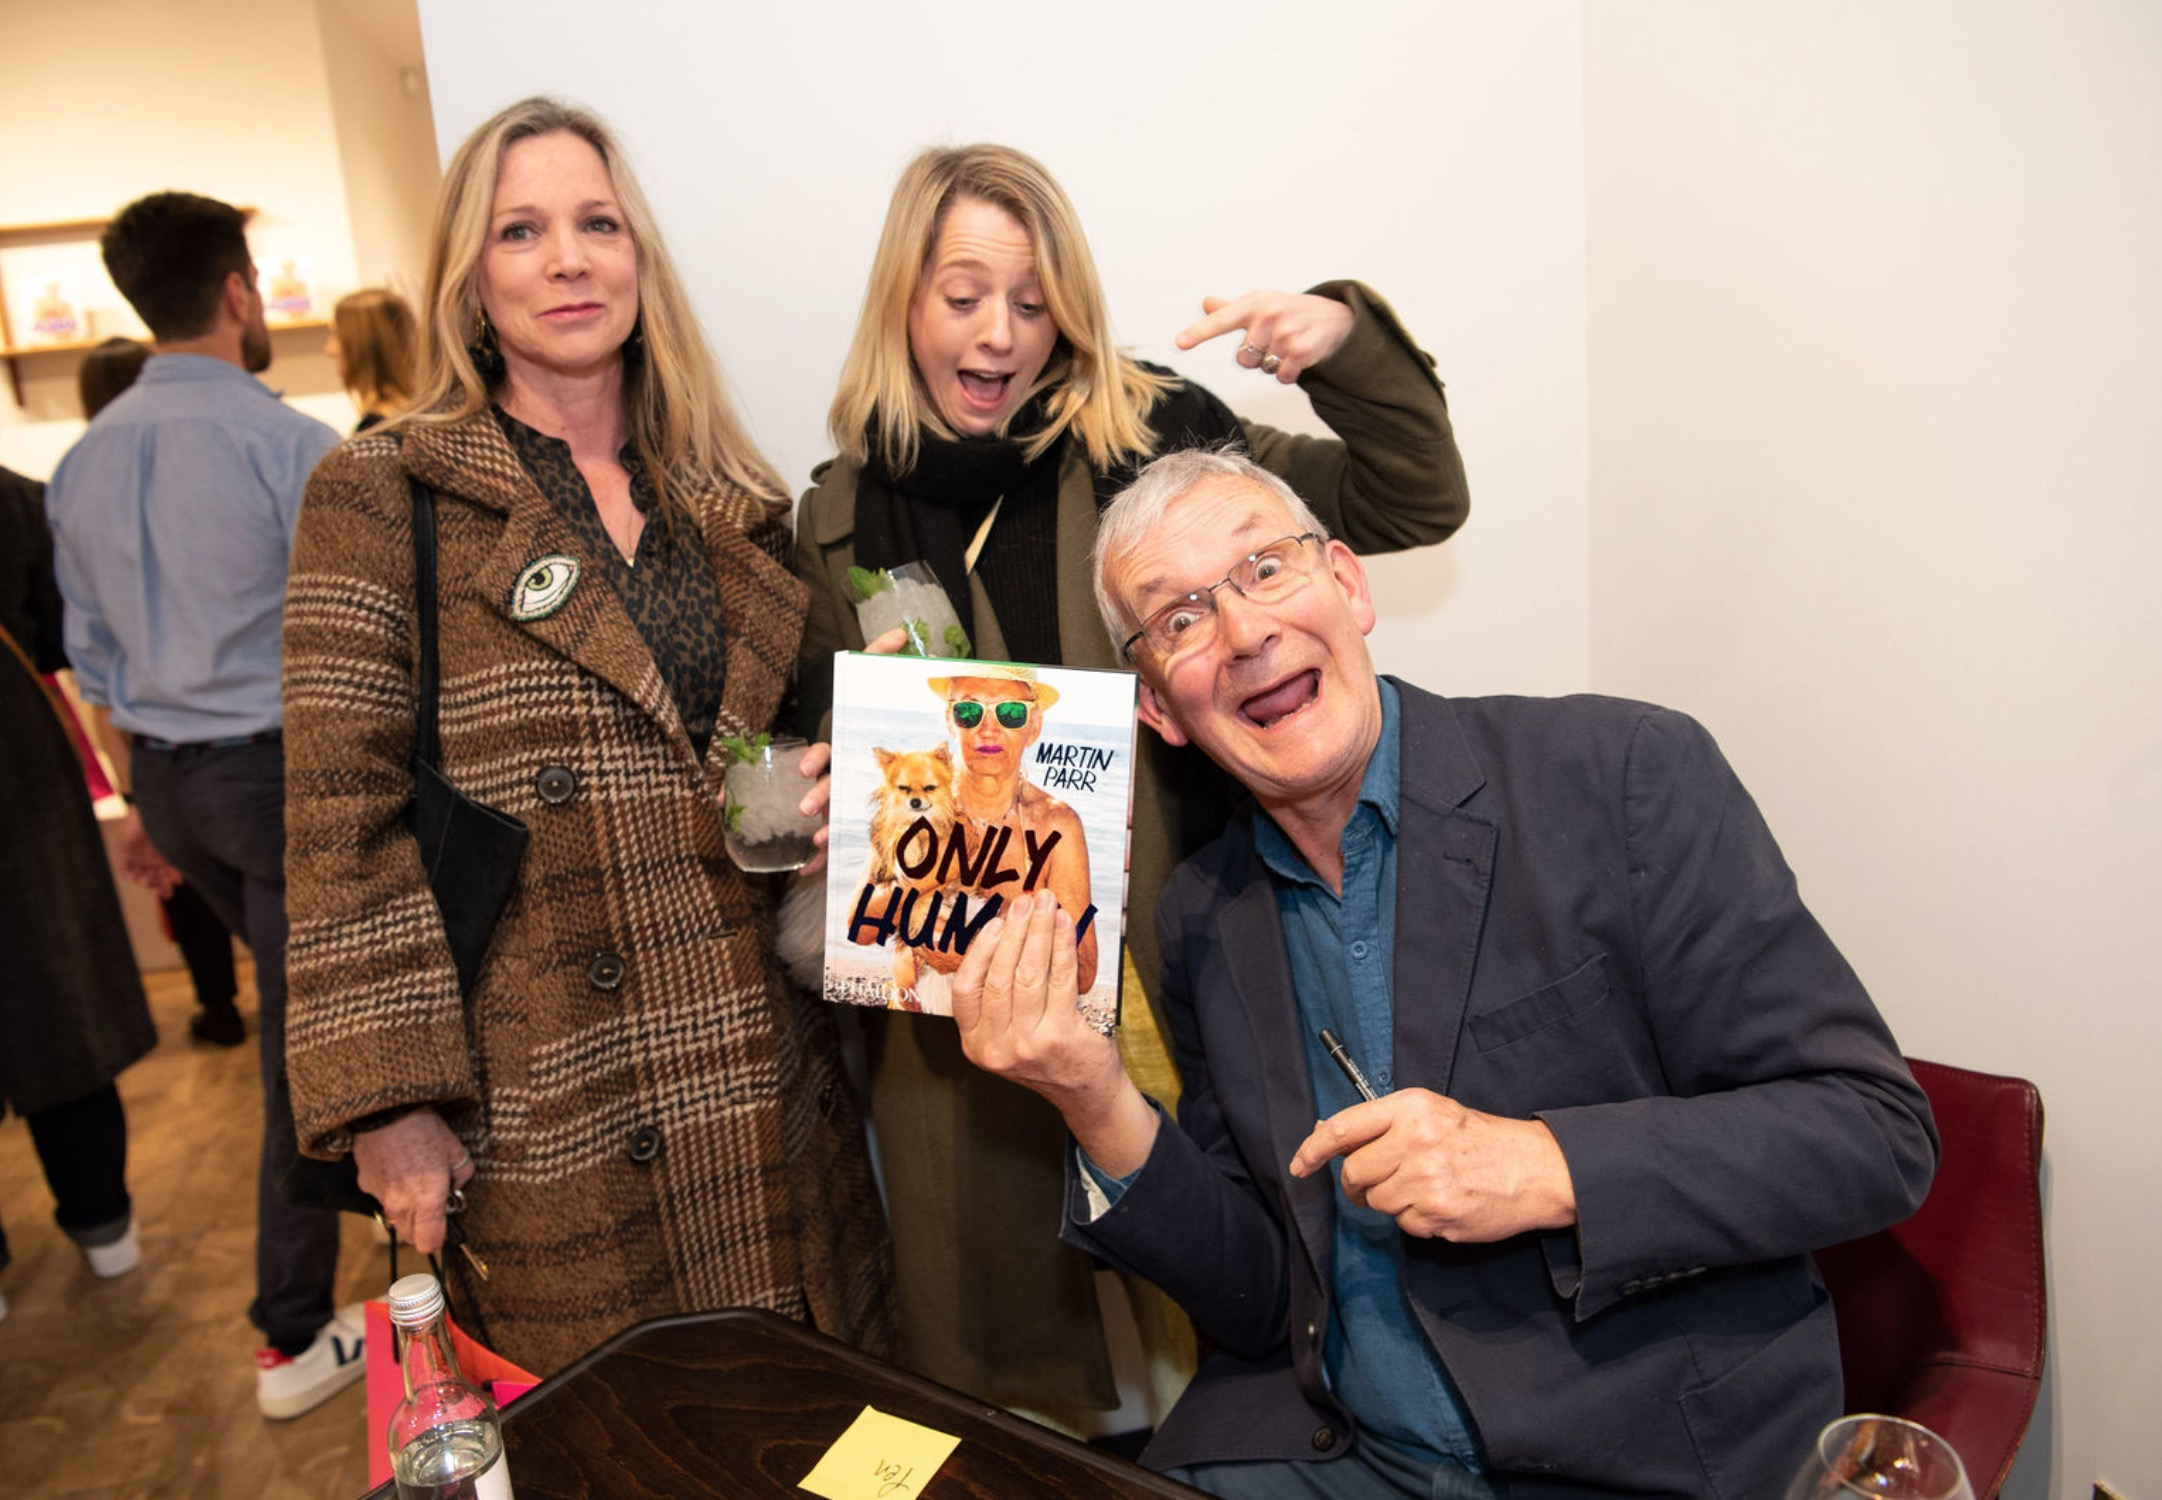 Martin Parr and guests at Paul Smith Photograph by James Mason